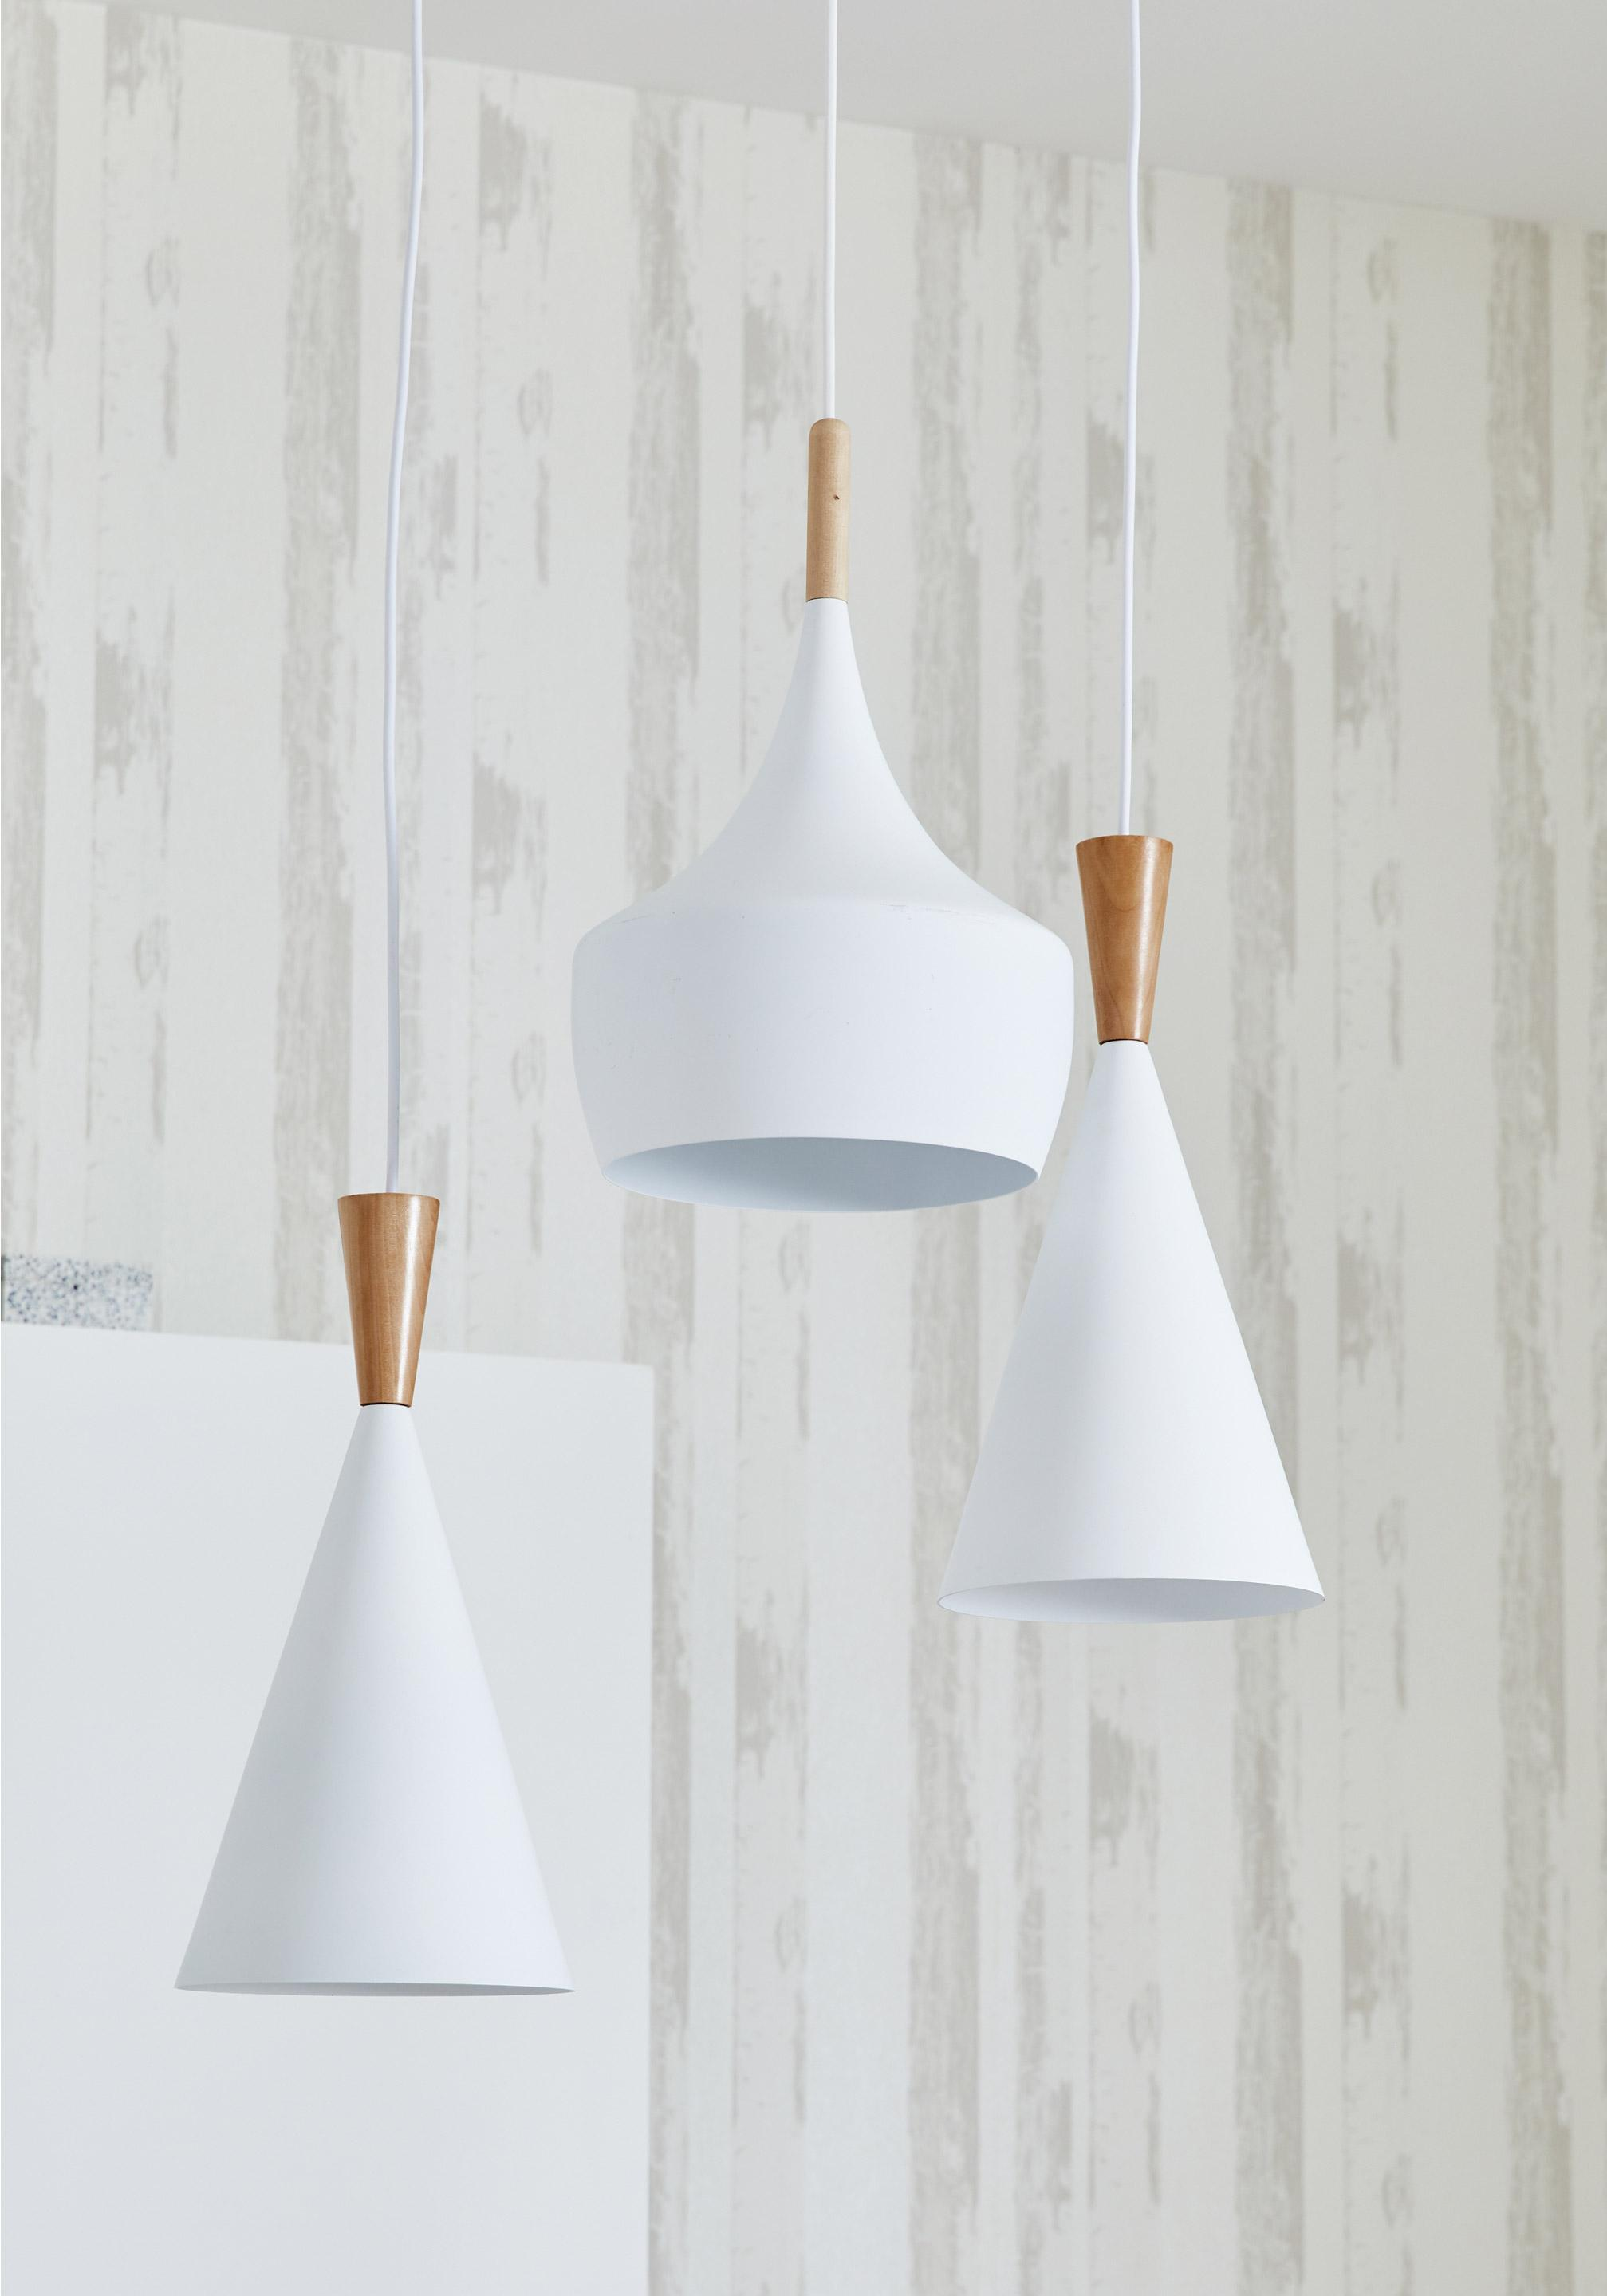 Suspension Scandinave Metal Blanc Lussiol Ingrid 1 Lumiere S D 24 Cm Image Zoomee Suspension Luminaire Cuisine Luminaire Luminaire Contemporain